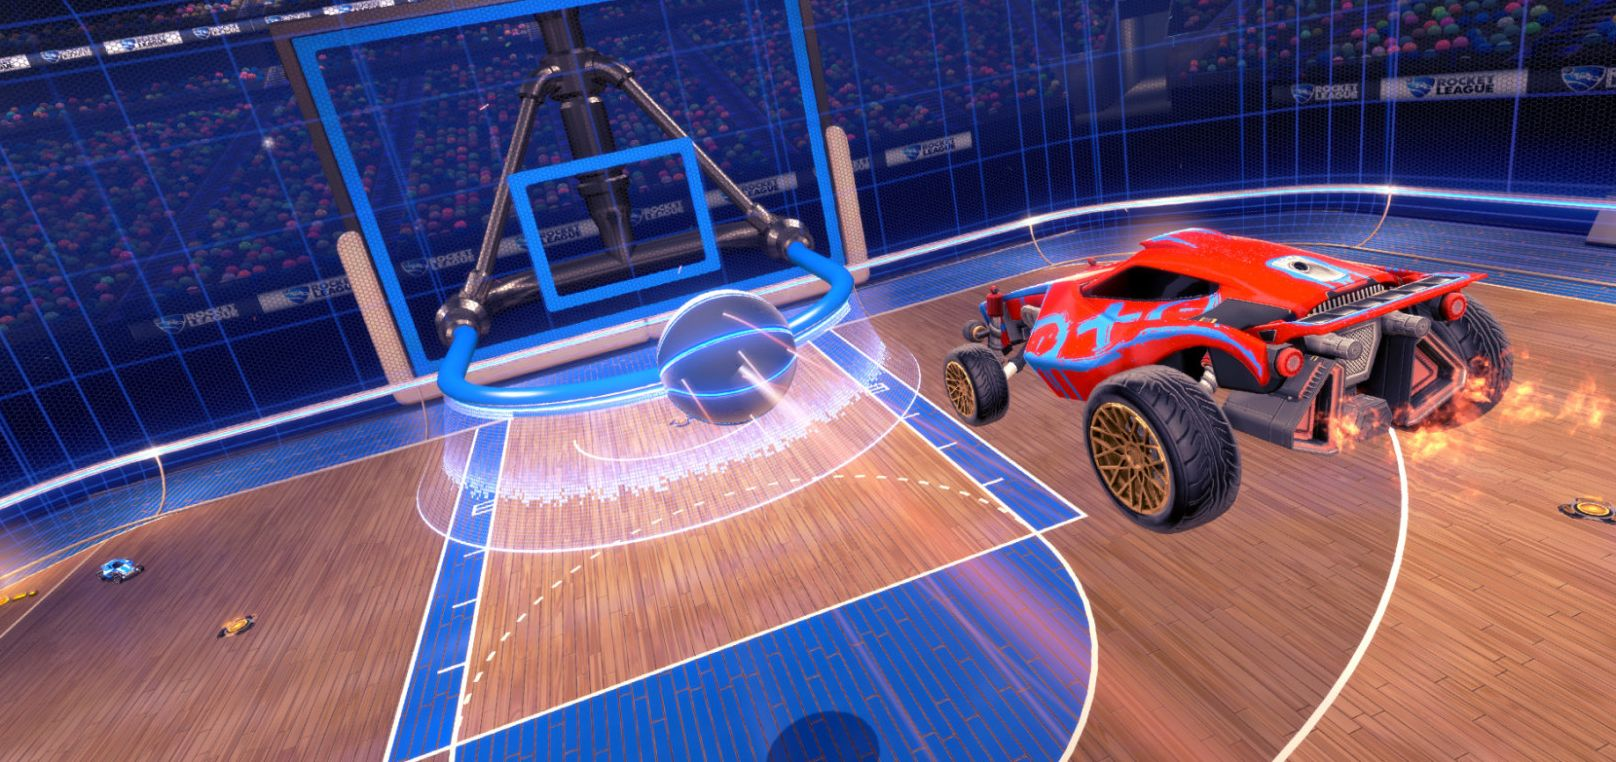 The Hoops DLC for Rocket League is out next week | VG247